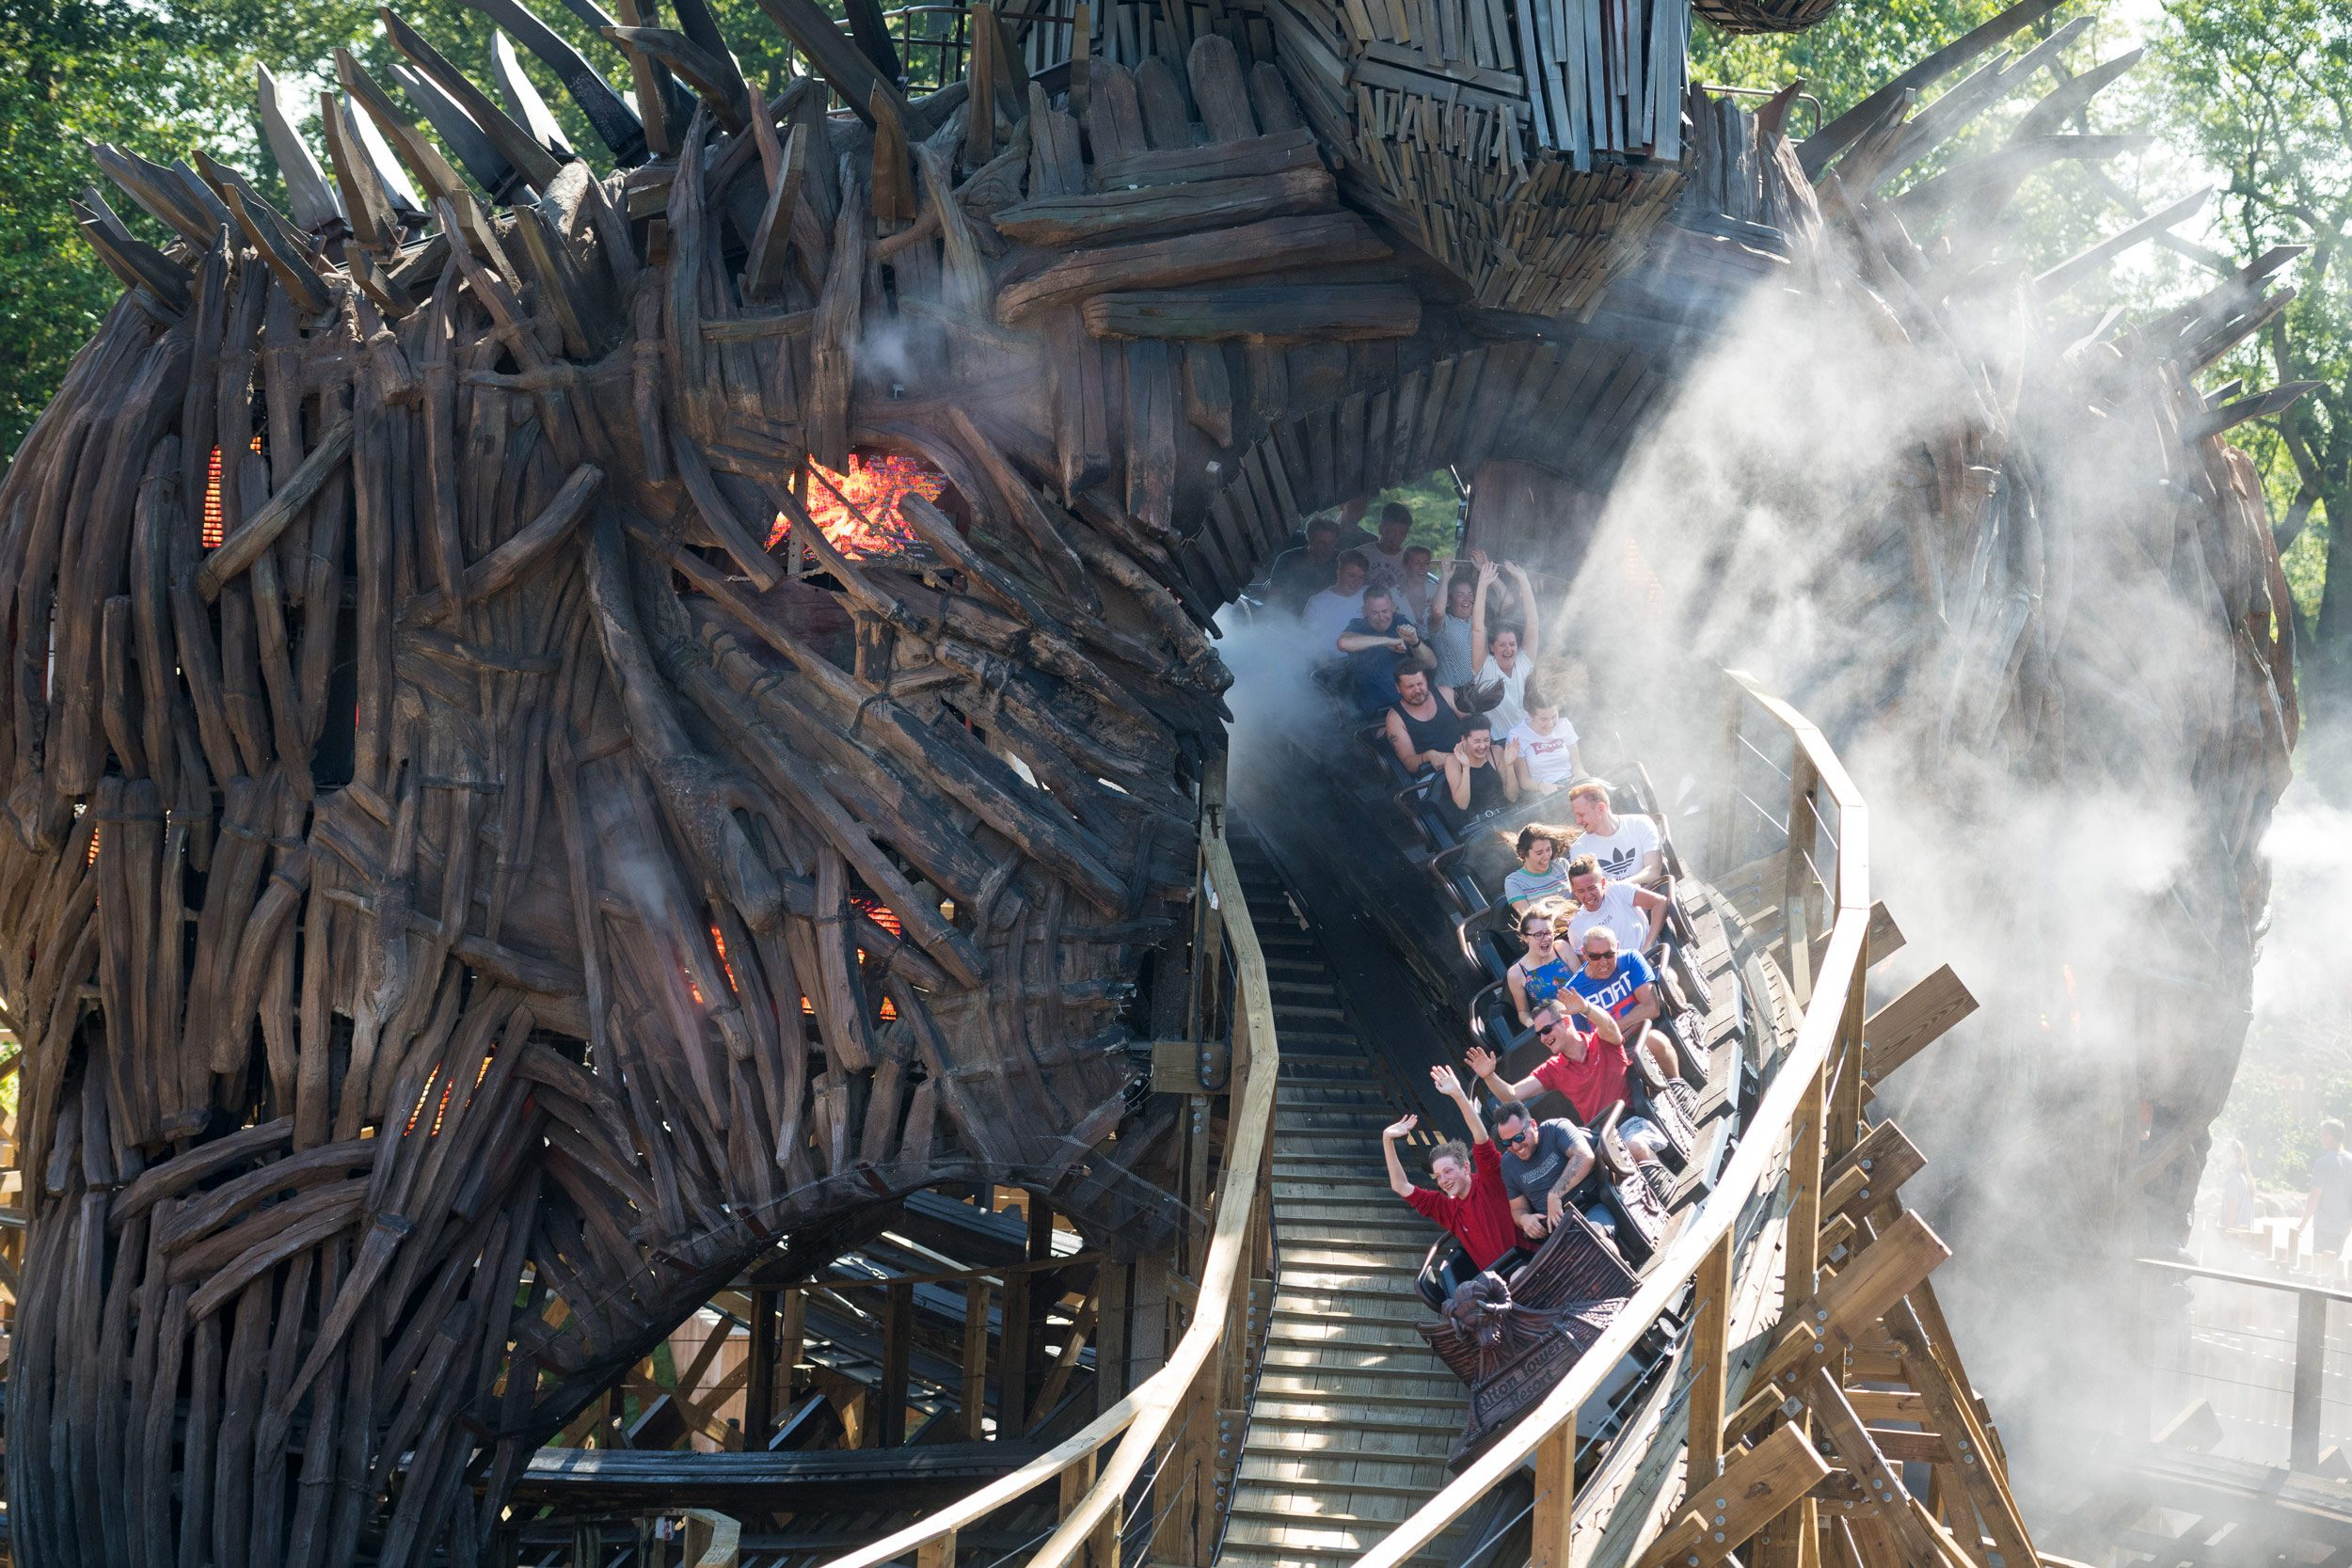 Riders on a rollercoaster exit a tunnel.